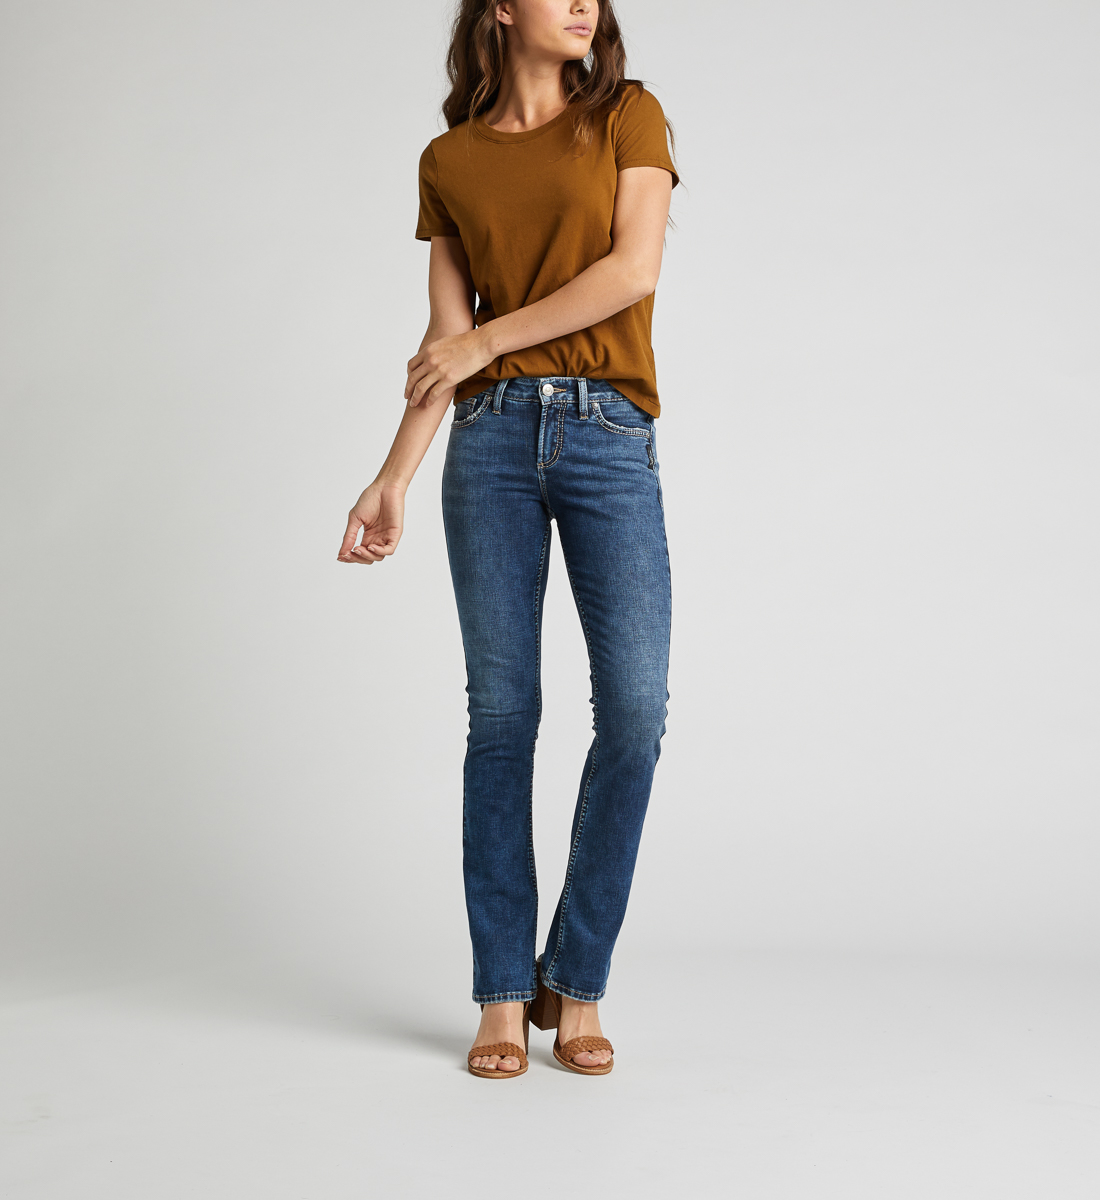 Avery High Rise Slim Bootcut Jeans Alt Image 1